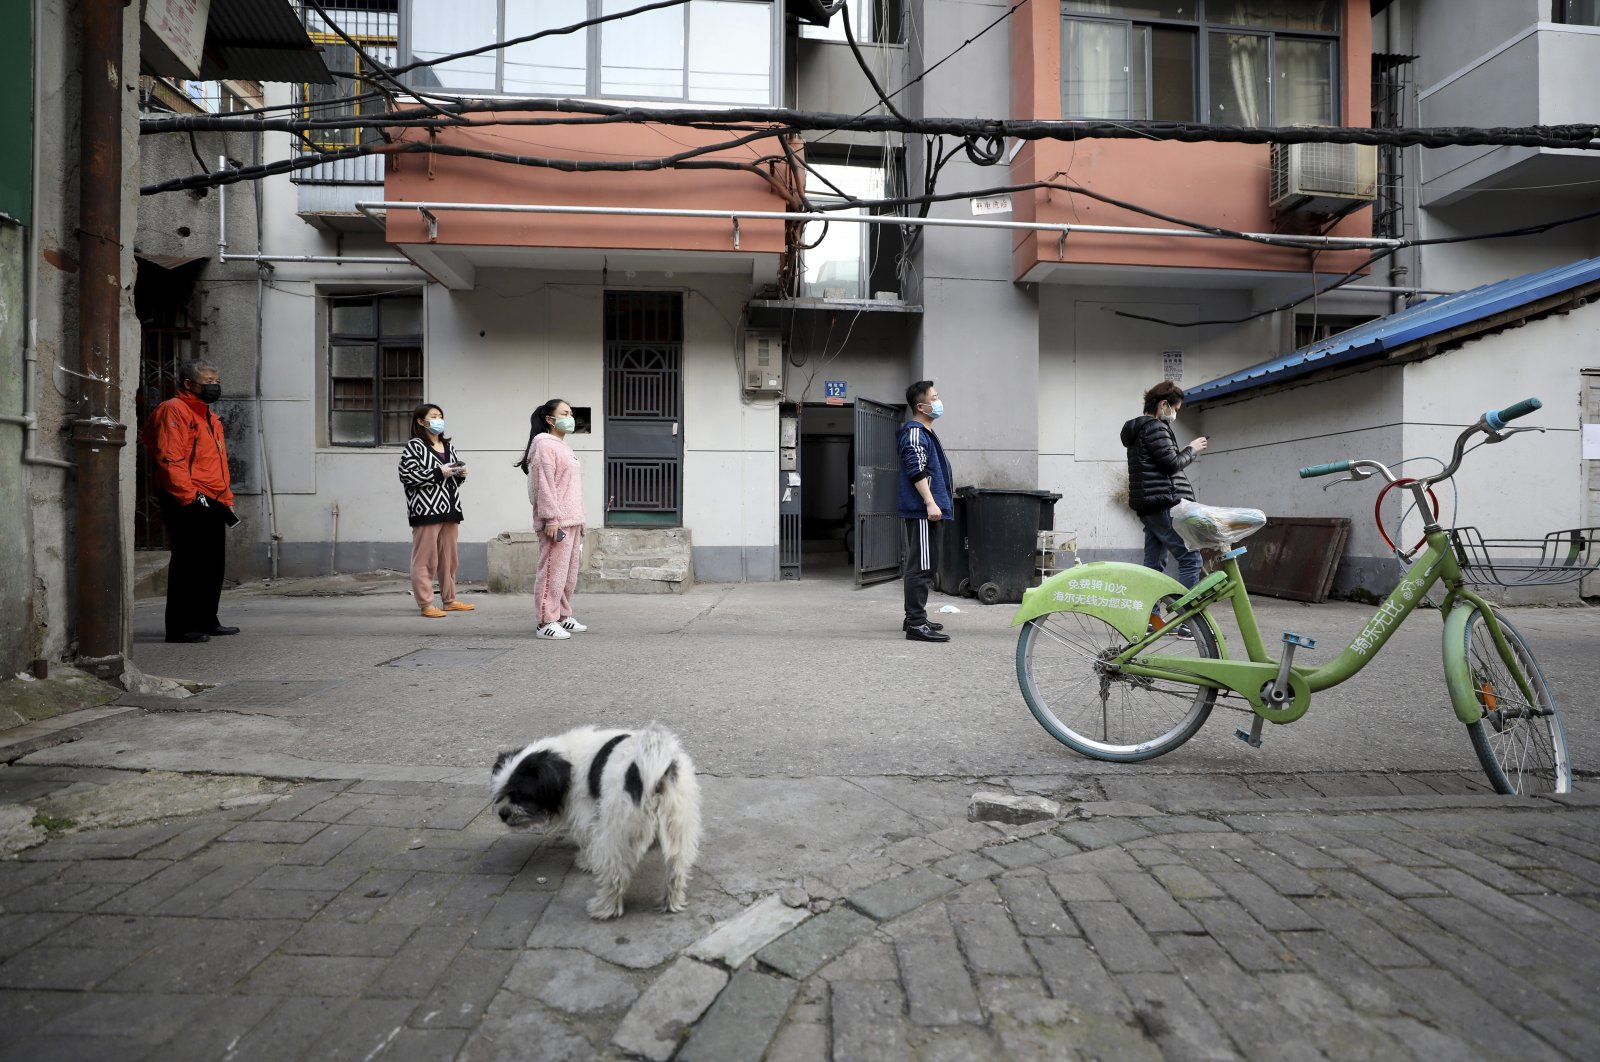 People stand in a spaced line as they wait to buy pork at the entrance gate of a closed residential community in Wuhan in central China's Hubei Province, Wednesday, March 18, 2020. (AP Photo)